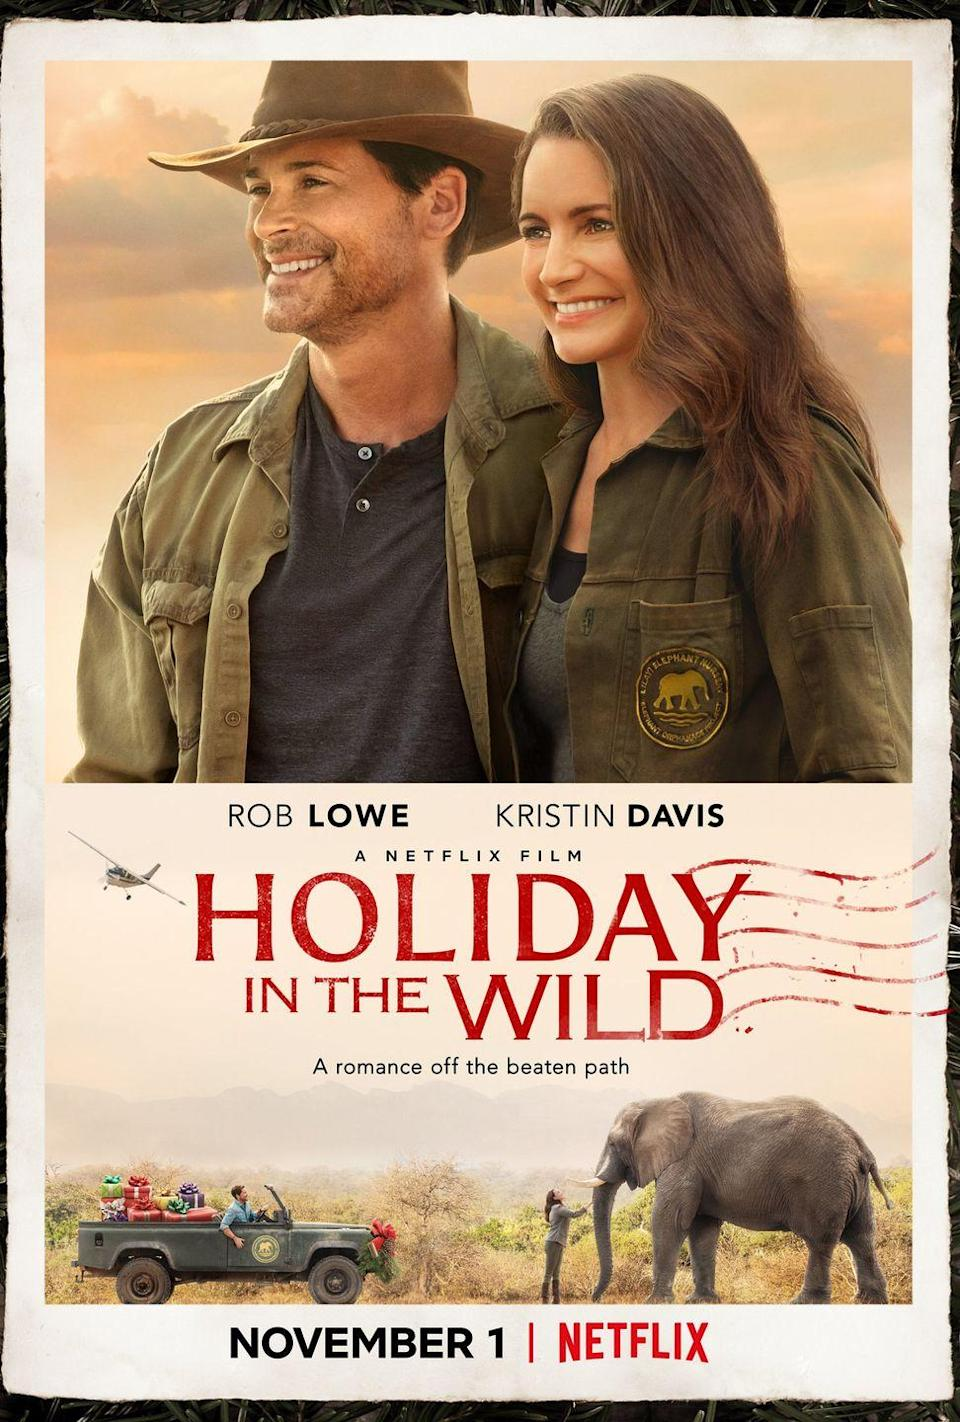 """<p>Starring Rob Lowe and Kristin Davis, this holiday rom-com tells the story of a woman who, abandoned by her husband the night before they're set to leave on an African safari, decides to travel to Cape Town alone, where she meets a cute elephant conservationist. </p><p><a class=""""link rapid-noclick-resp"""" href=""""https://www.netflix.com/title/80231468"""" rel=""""nofollow noopener"""" target=""""_blank"""" data-ylk=""""slk:STREAM NOW"""">STREAM NOW</a></p>"""